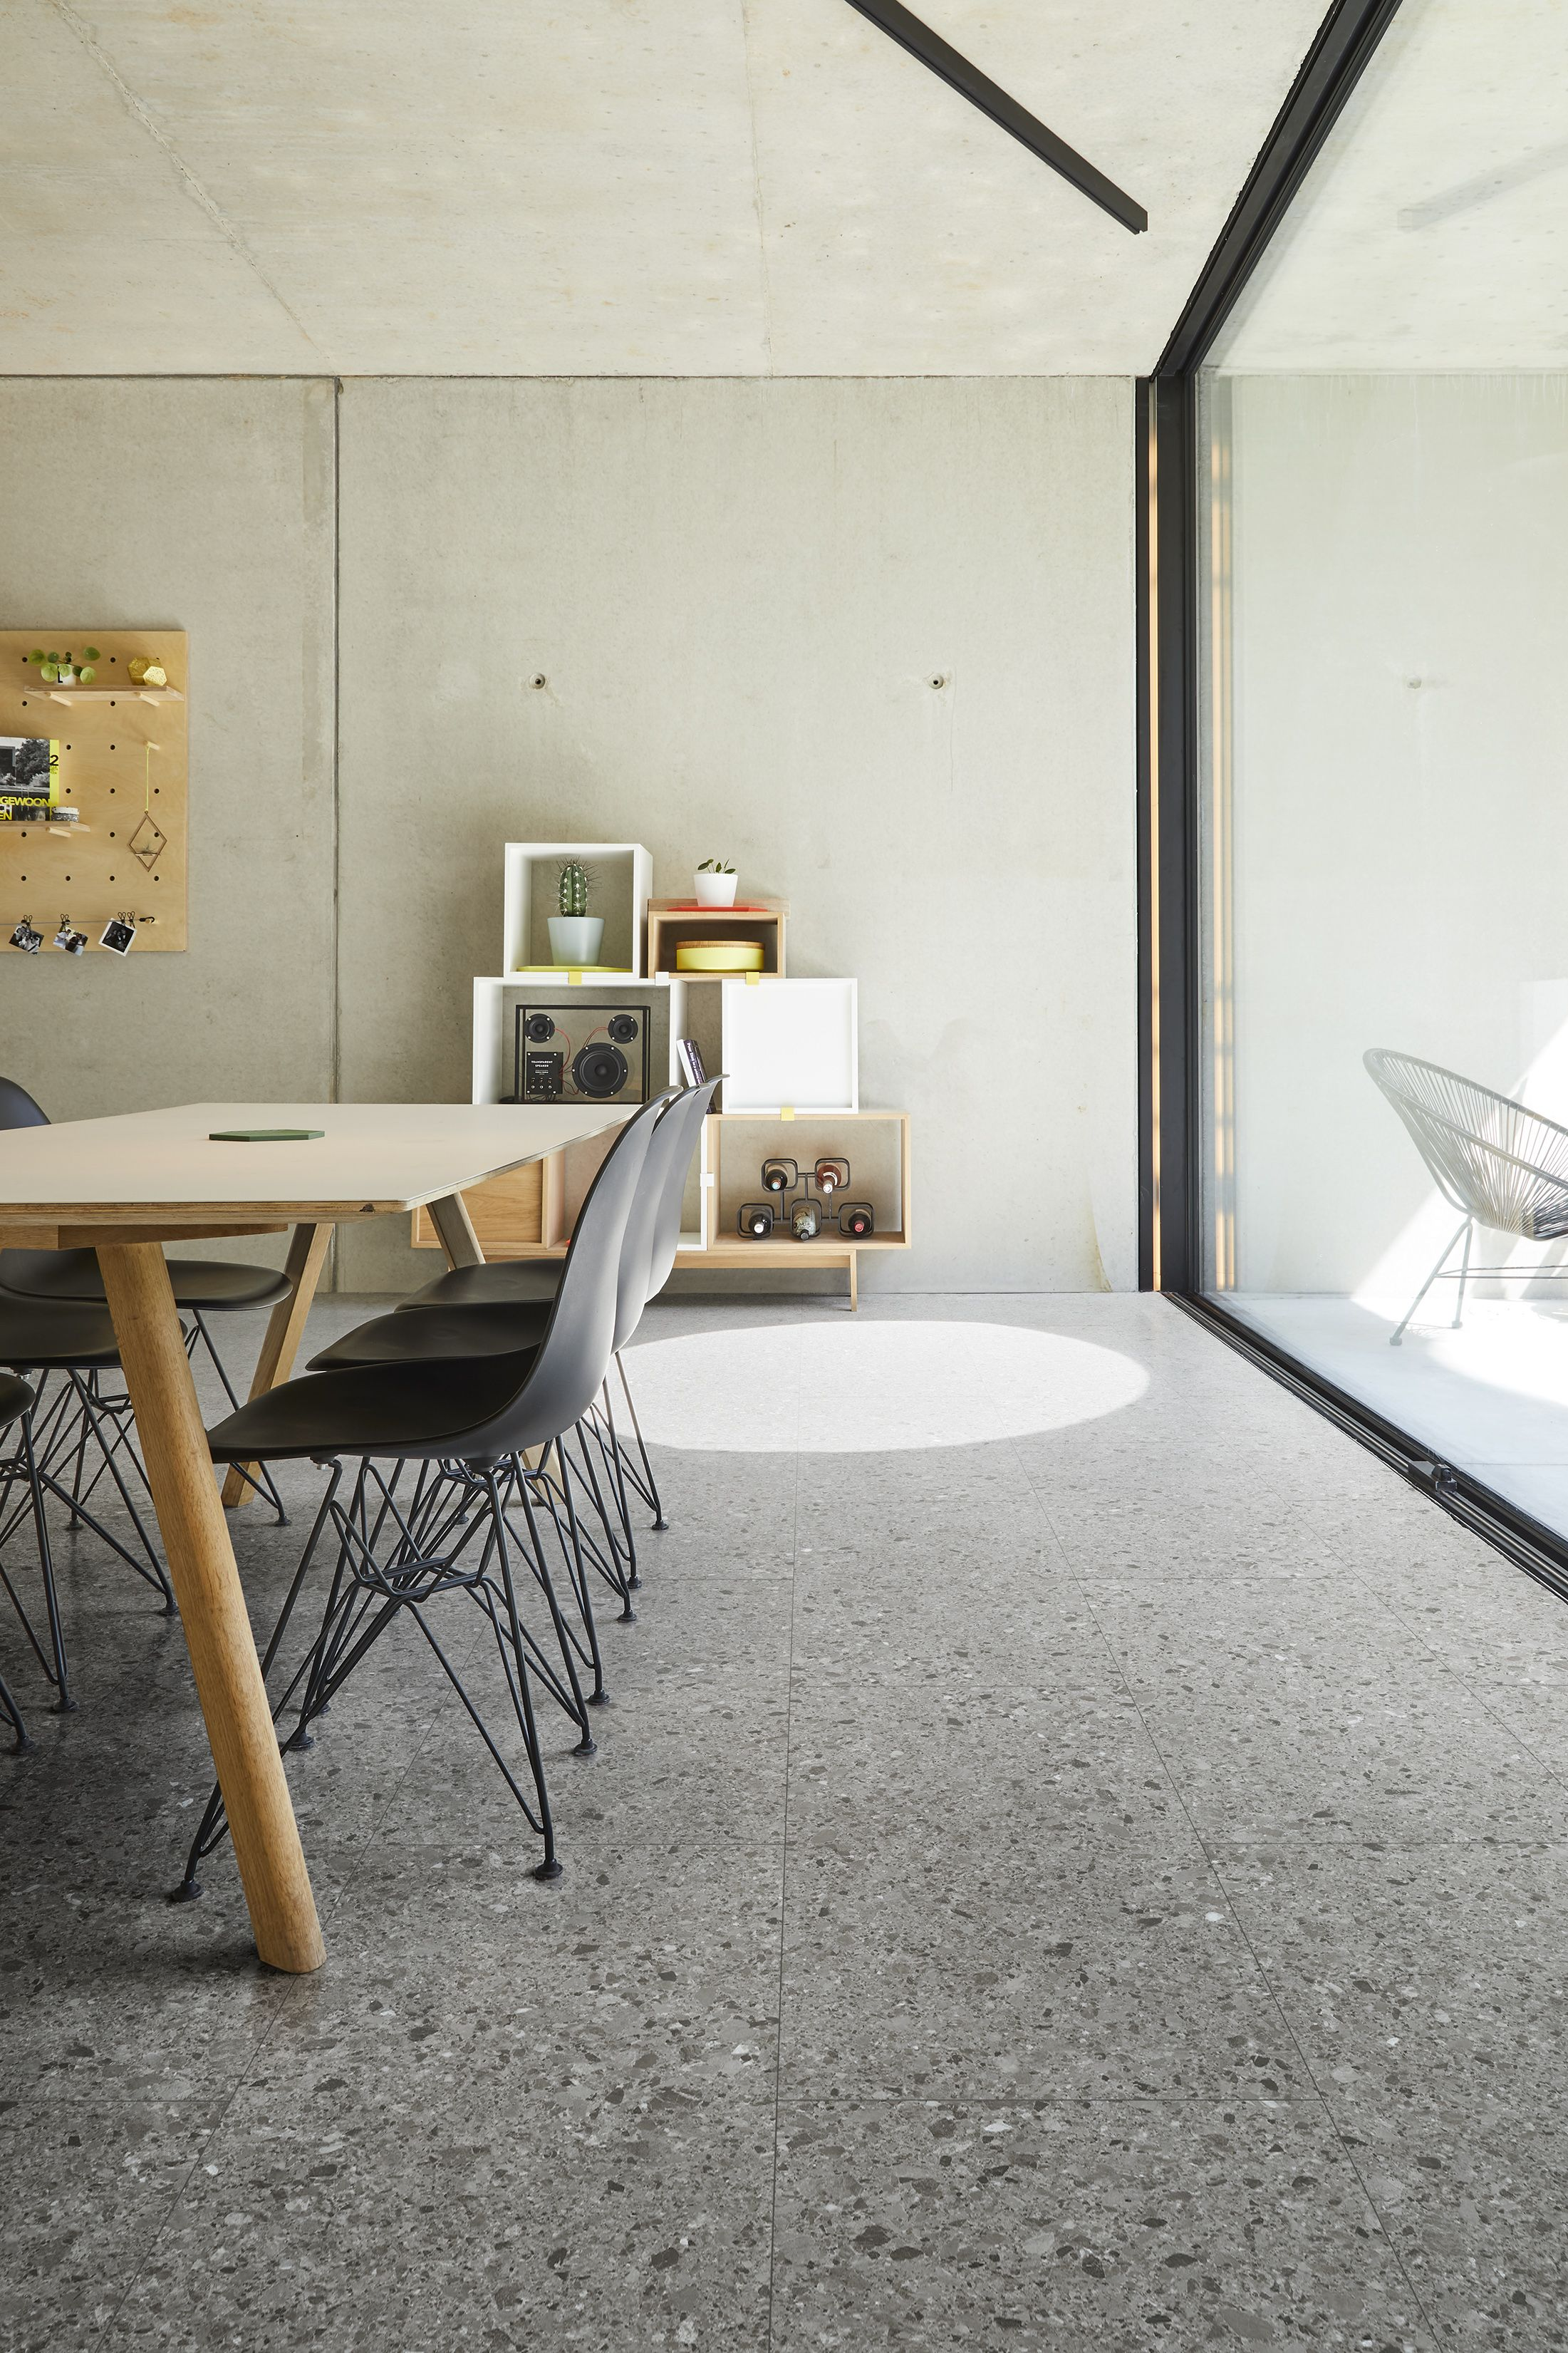 Looking for vinyl stone flooring? Don't look any further